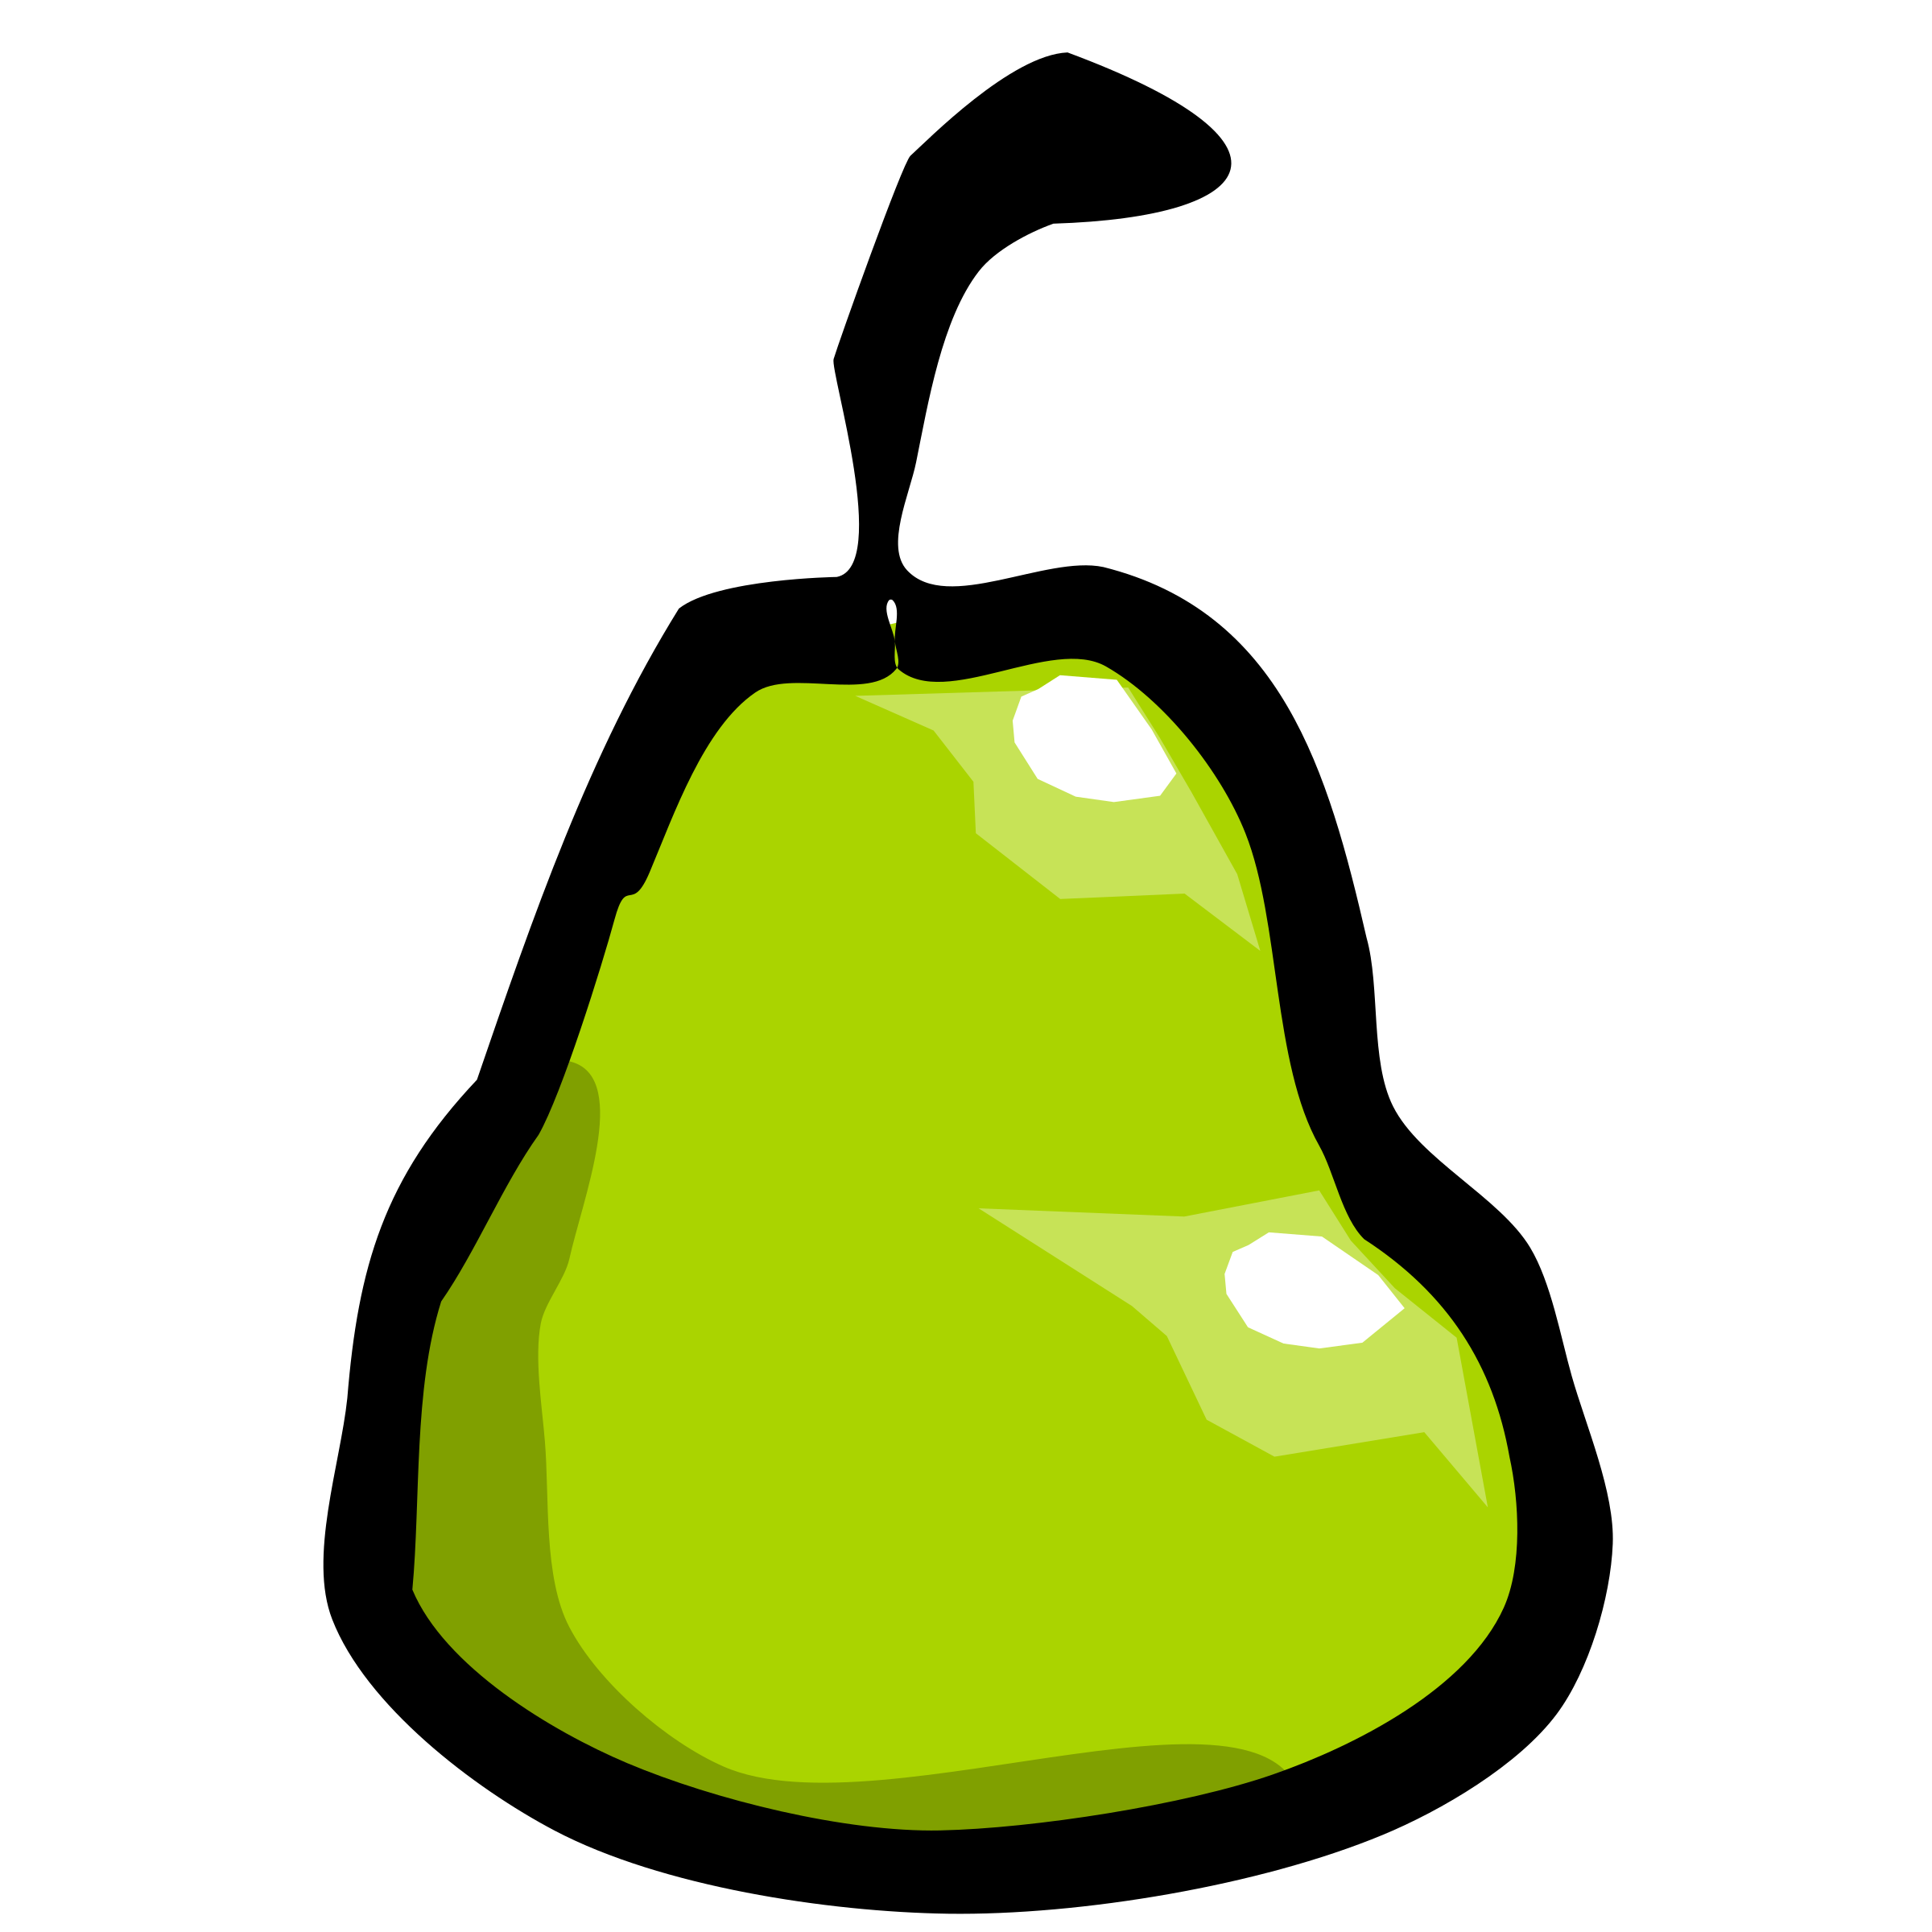 Pear clipart animated. Big image png